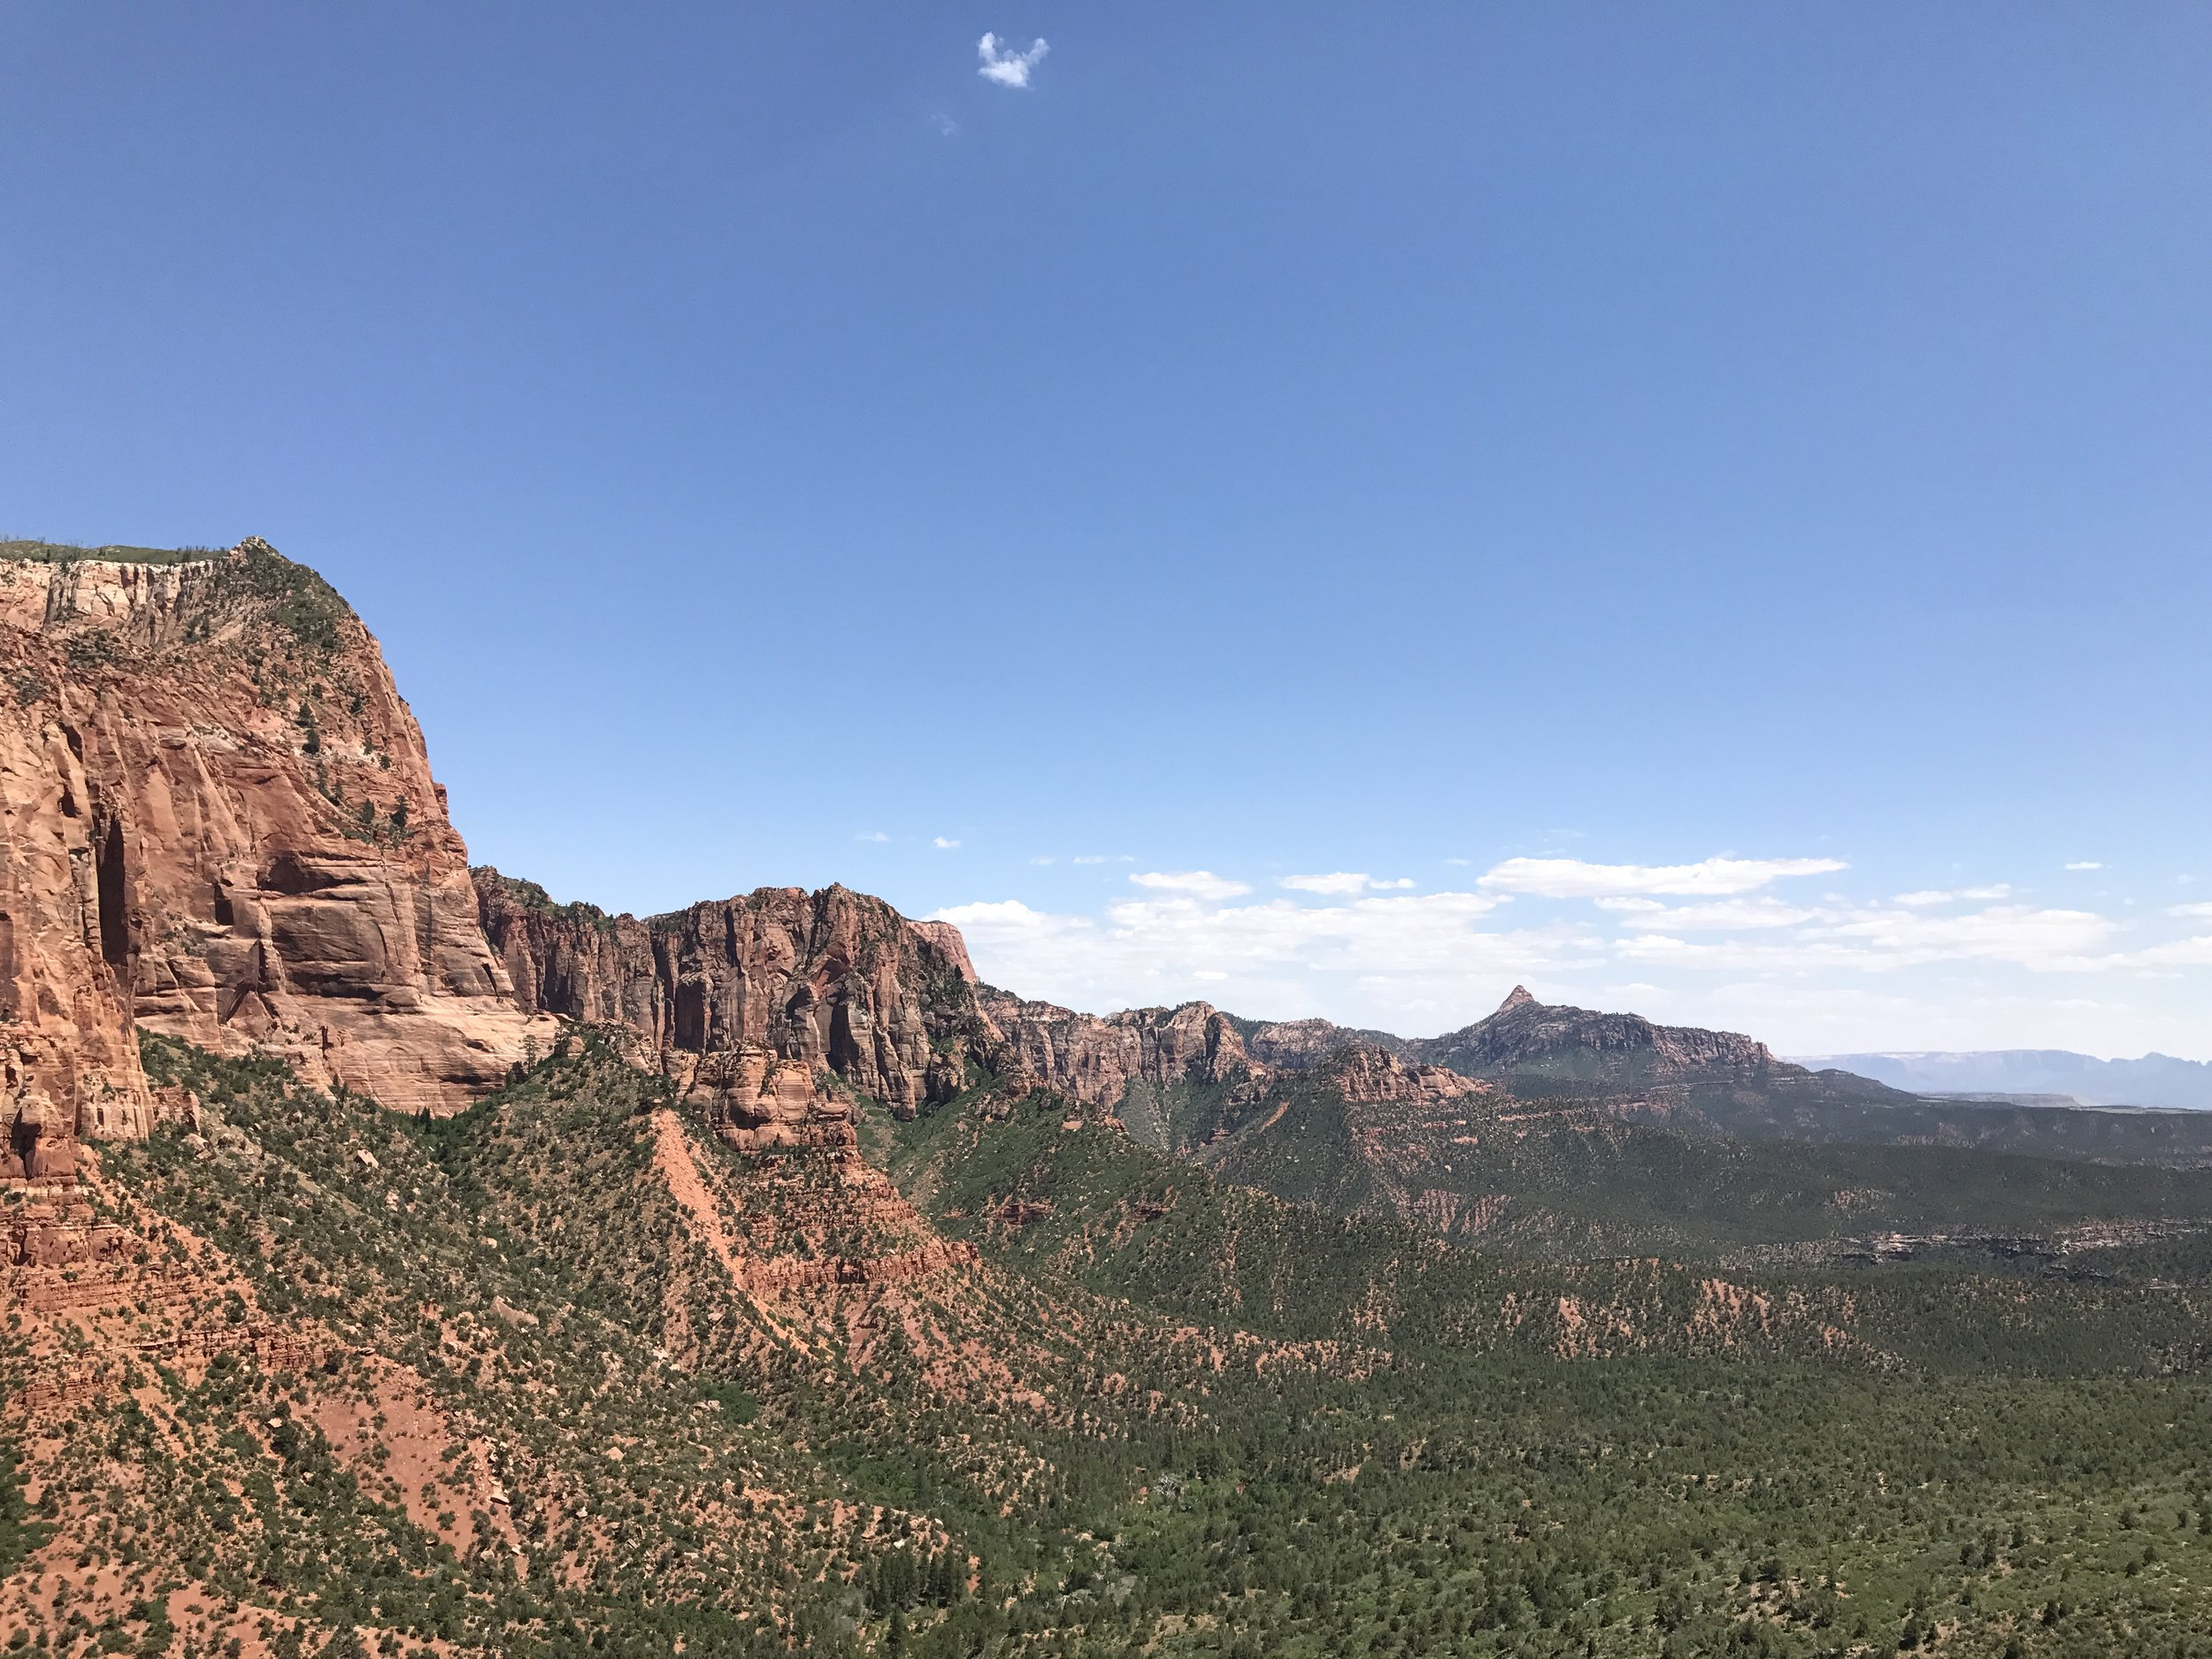 Looking out toward Zion Canyon and beyond, from the Timber Creek Overlook Trail